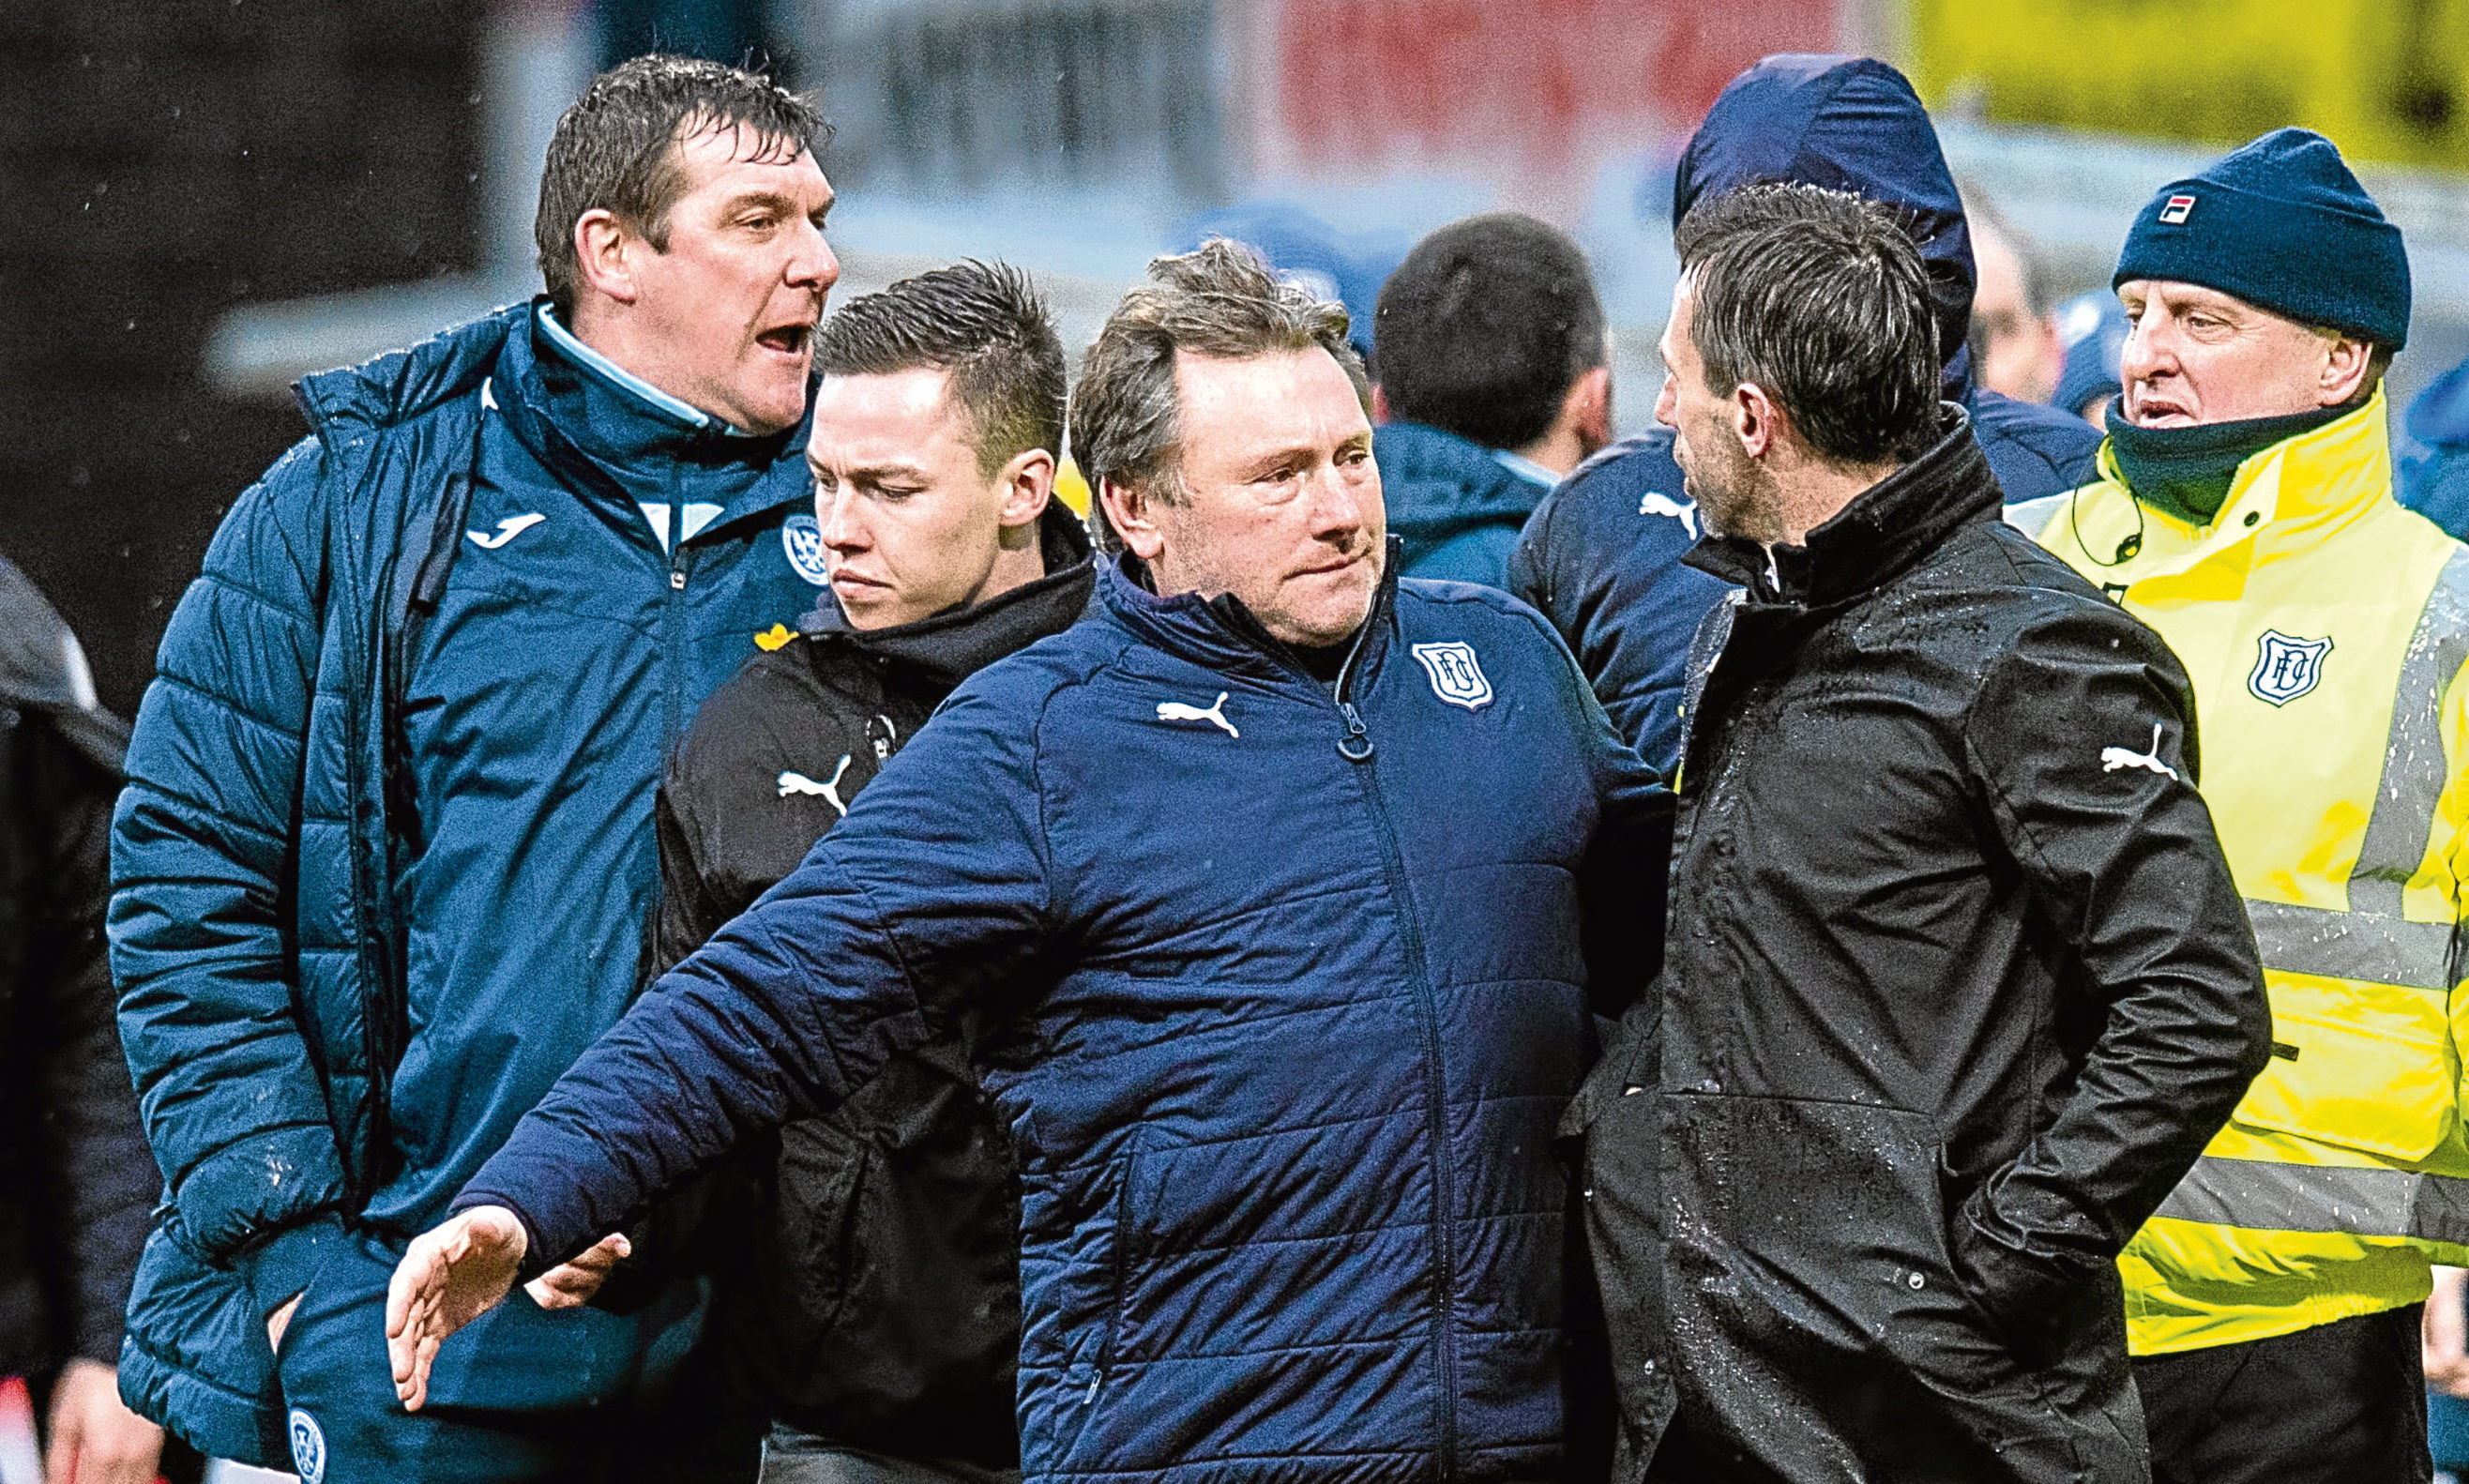 An altercation between managers Tommy Wright and Neil McCann leads to them being escorted away by Dundee youth development coach Jimmy Boyle